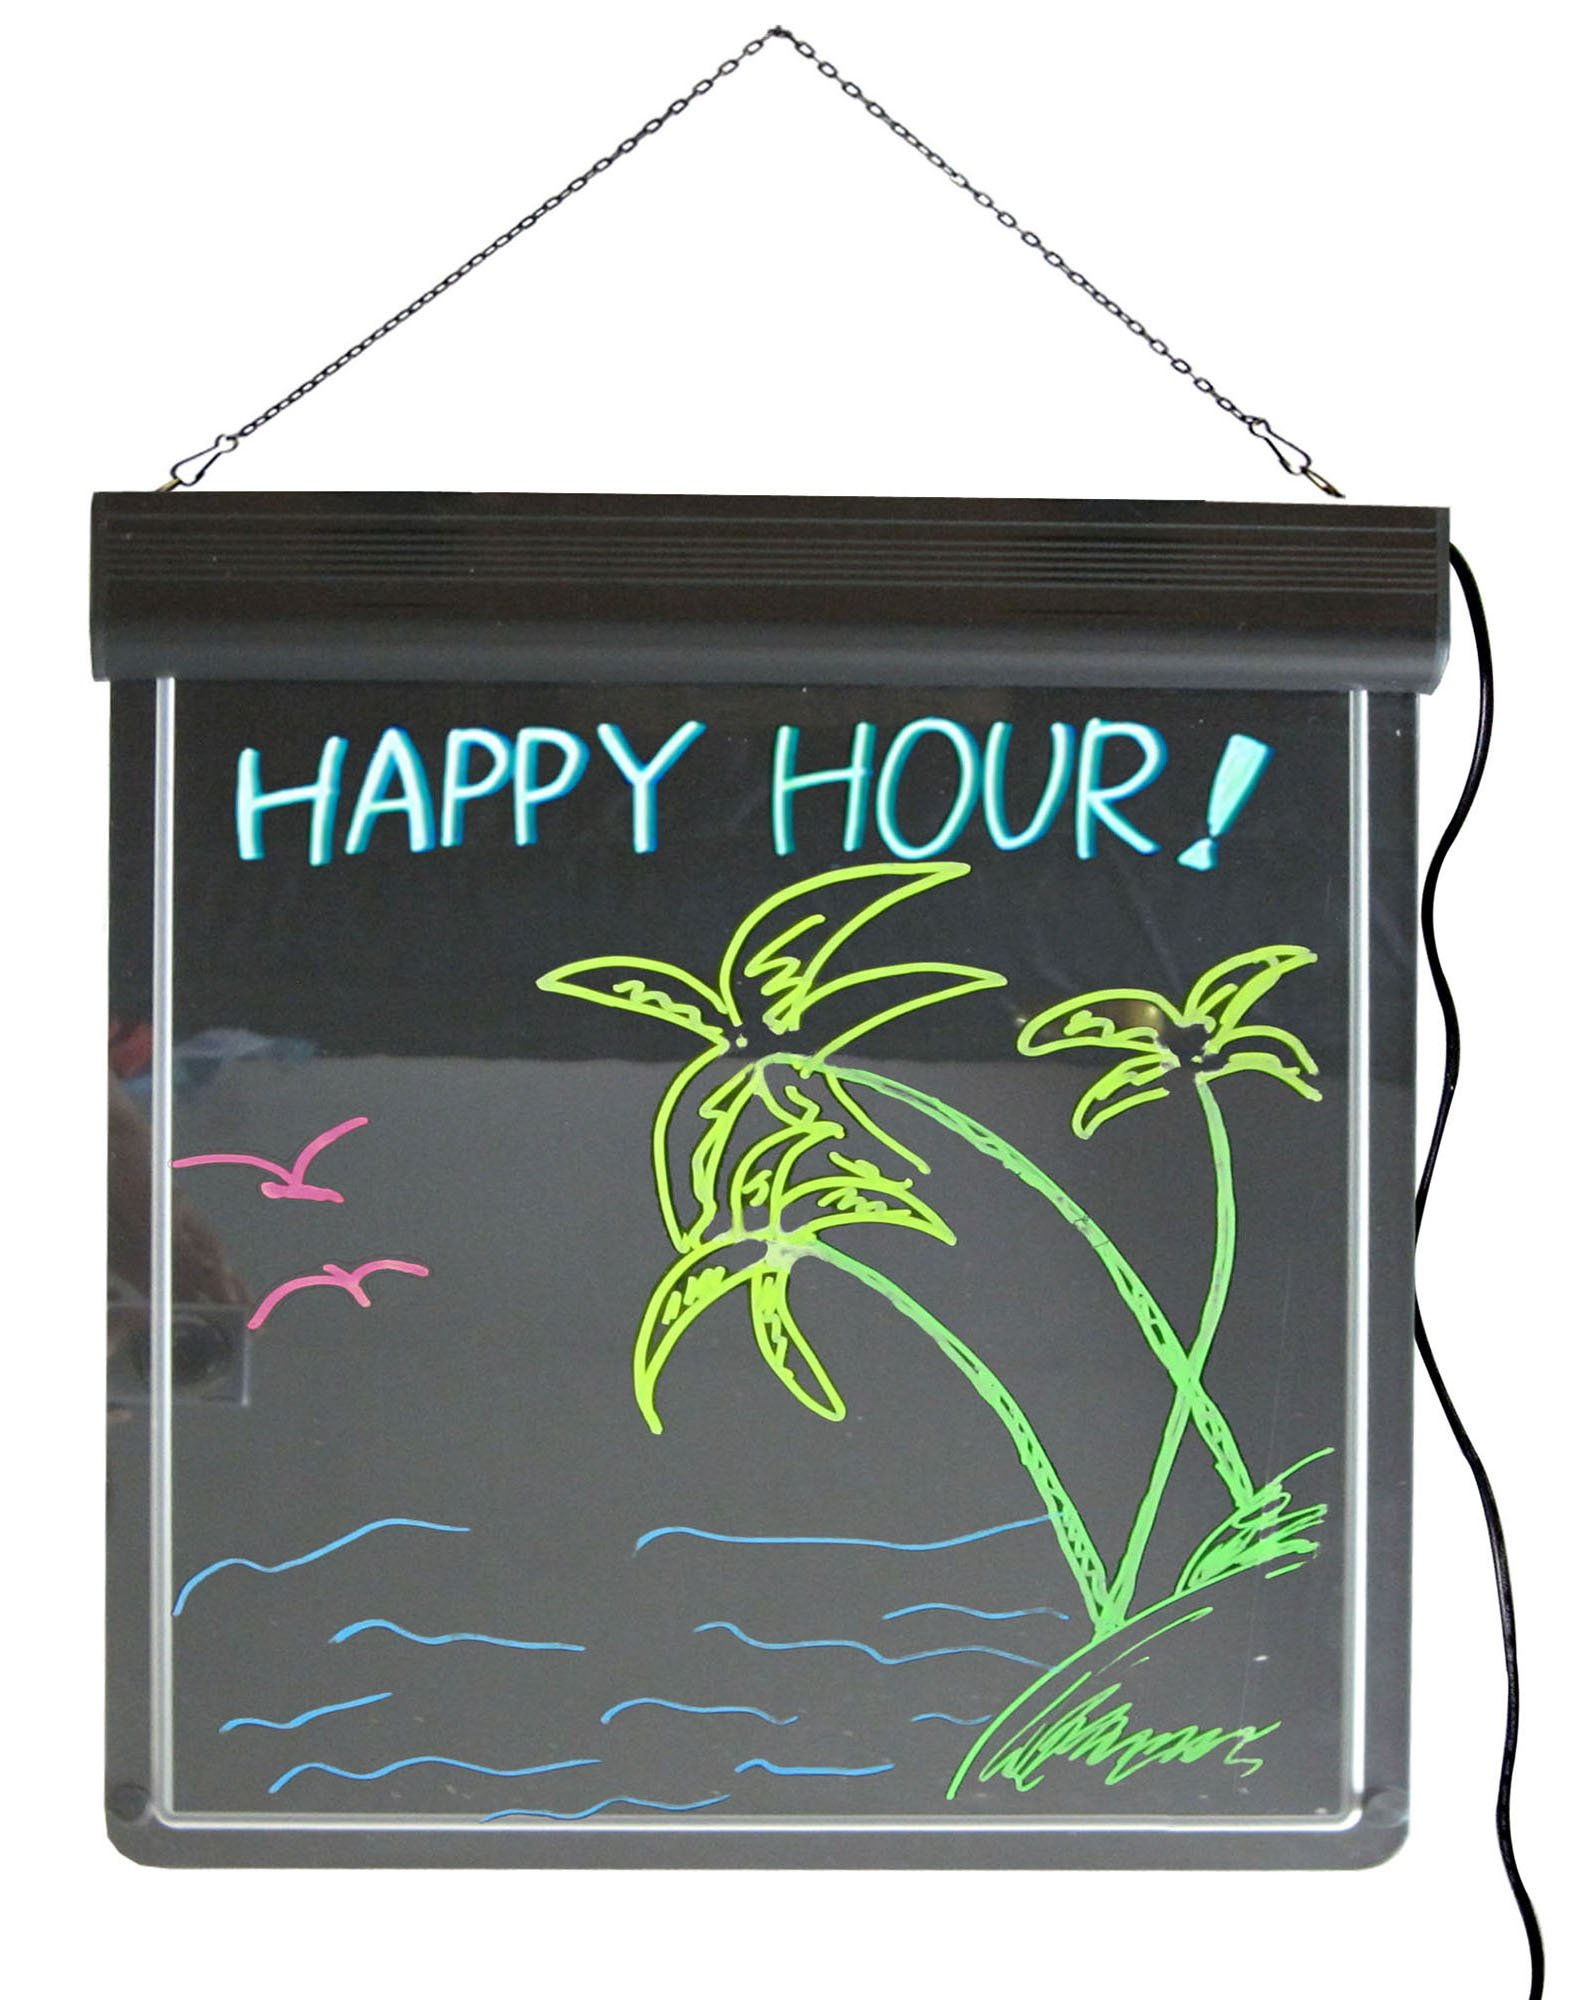 Lighted Writable Menu Board LED Message Board Display Billboard LED Sign 17 X 17 inches Magic